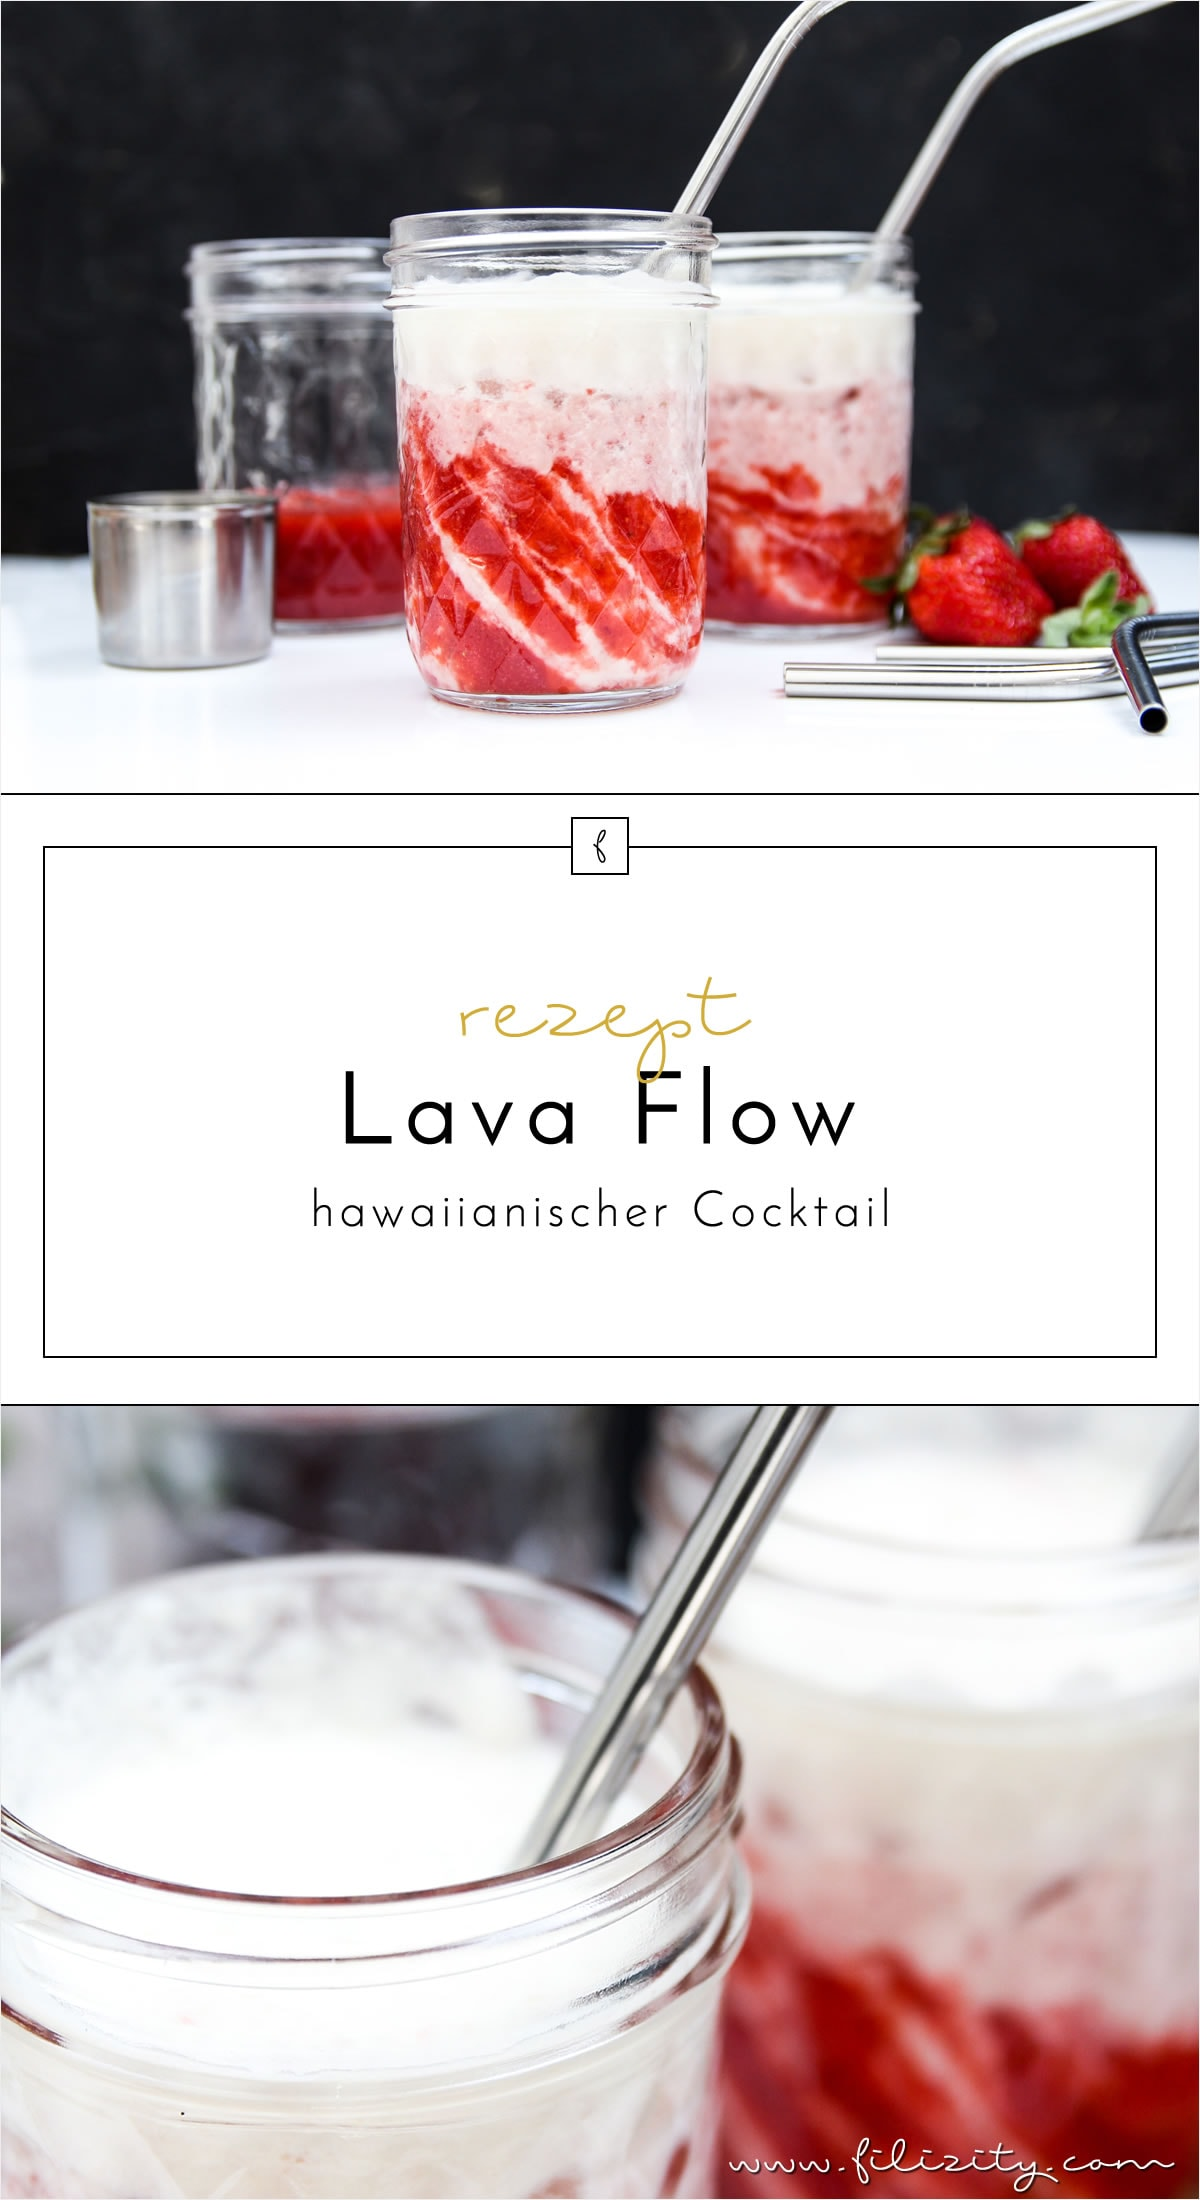 Lava Flow – hawaiianisches Cocktail-Rezept